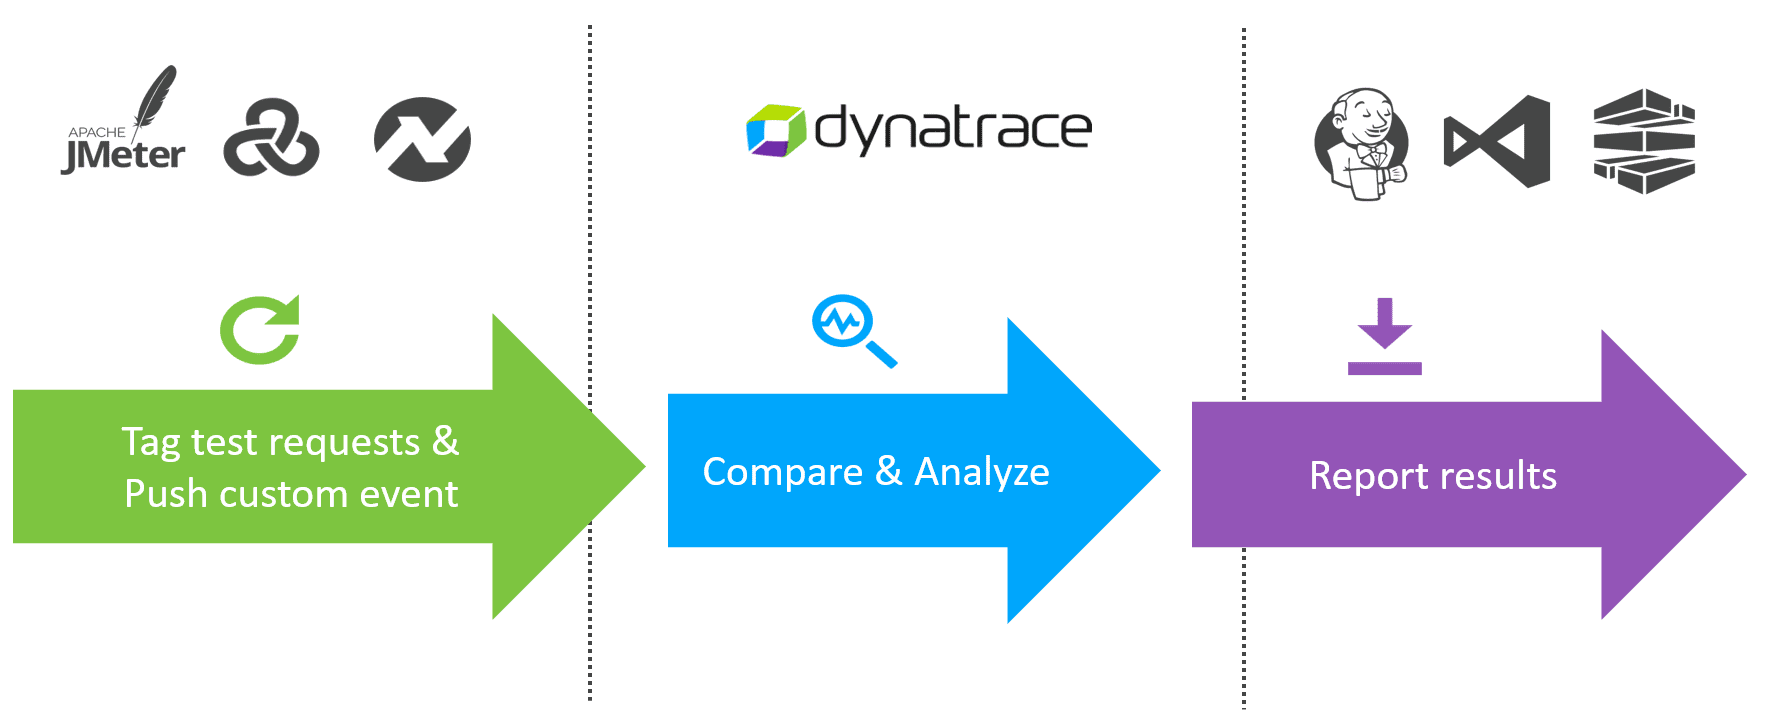 Dynatrace and load testing tools integration | Dynatrace Help